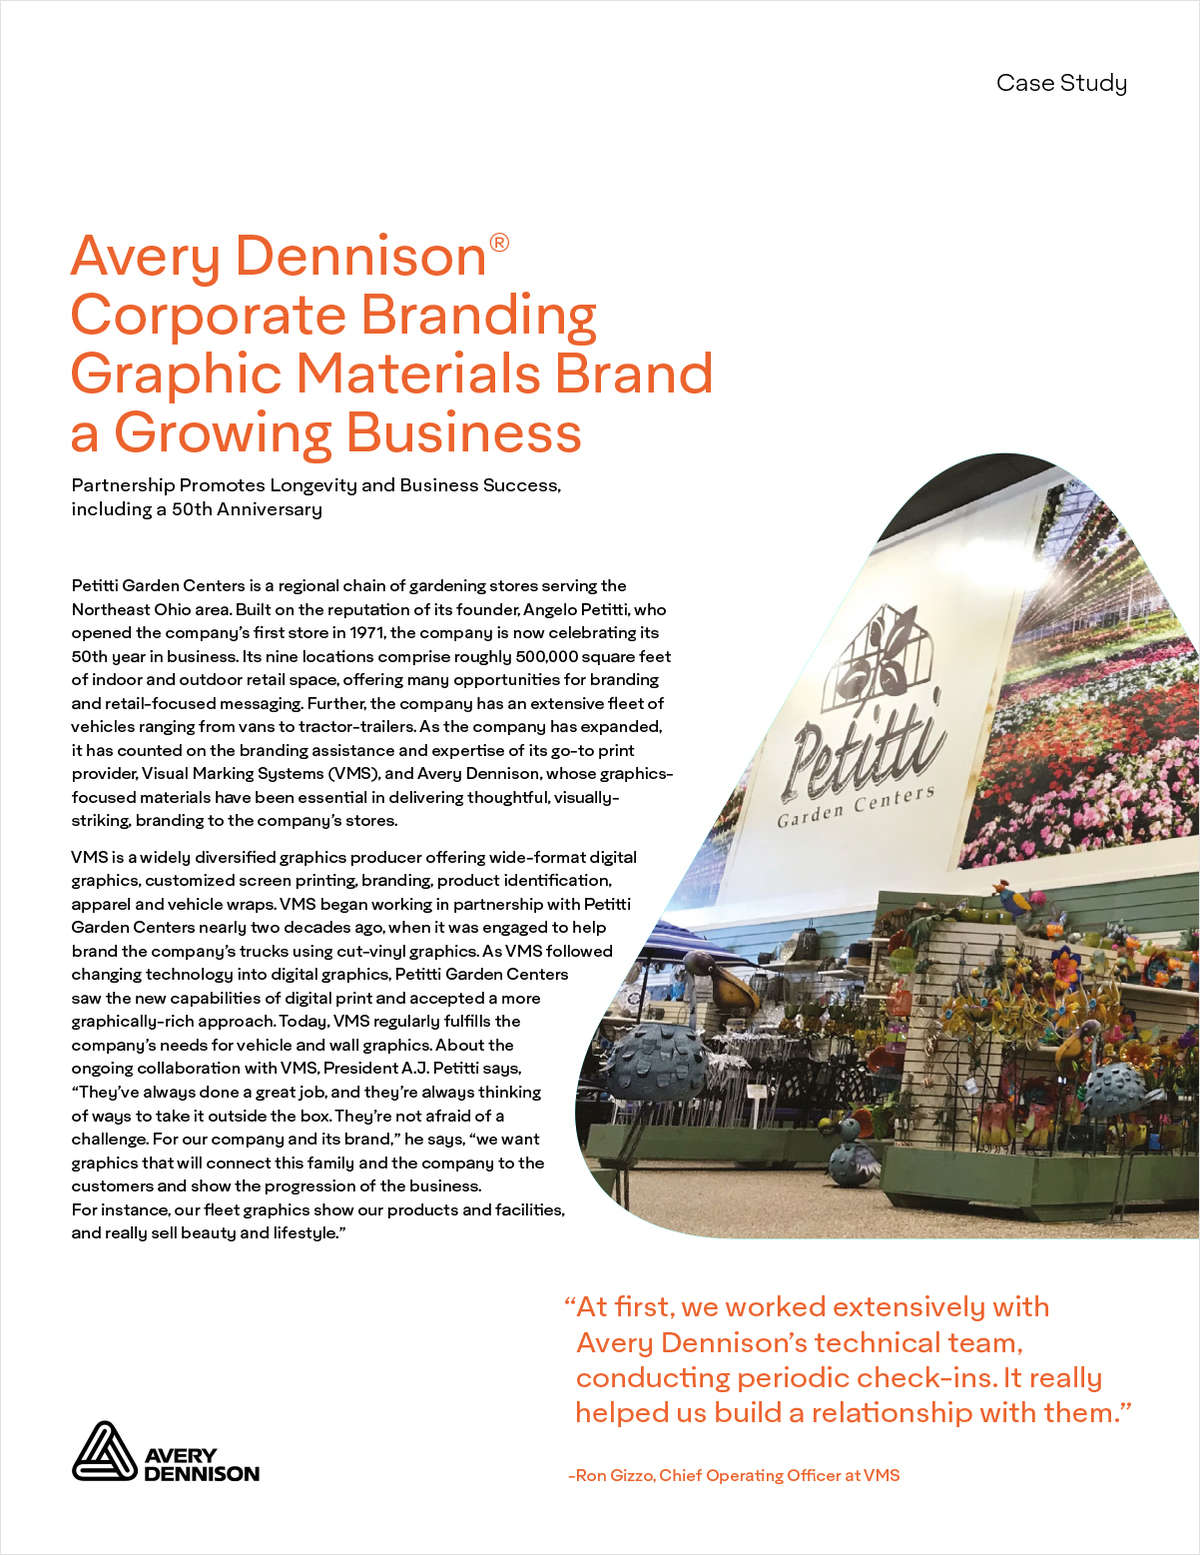 How Graphic Materials Helped to Brand a Growing Garden Business